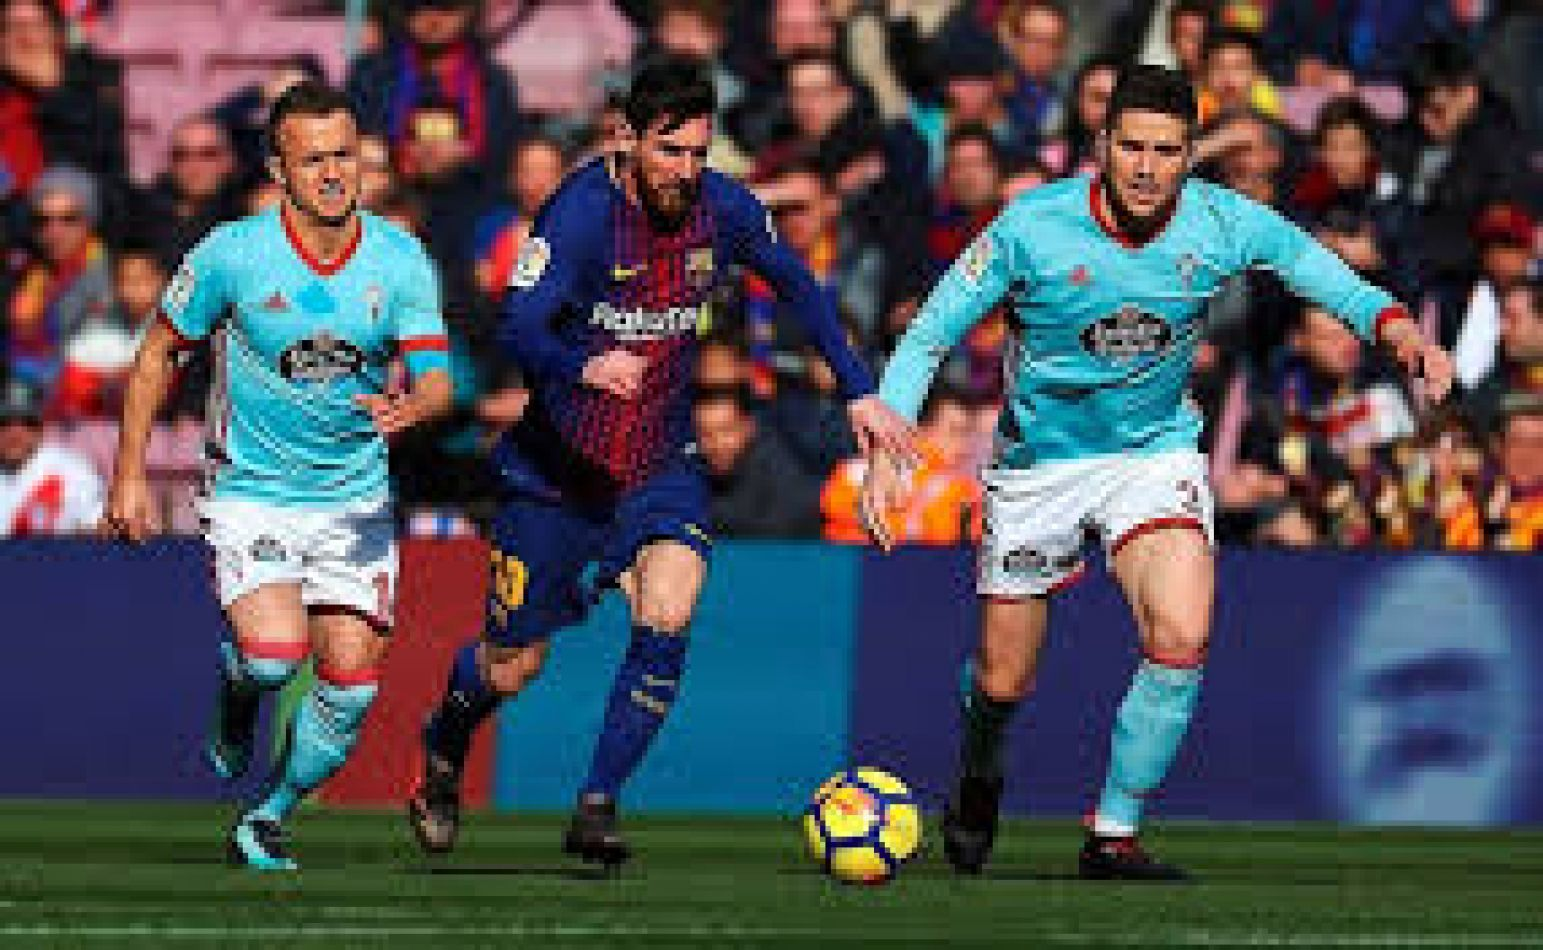 Un crack: Messi hizo dos golazos en dos minutos. Video